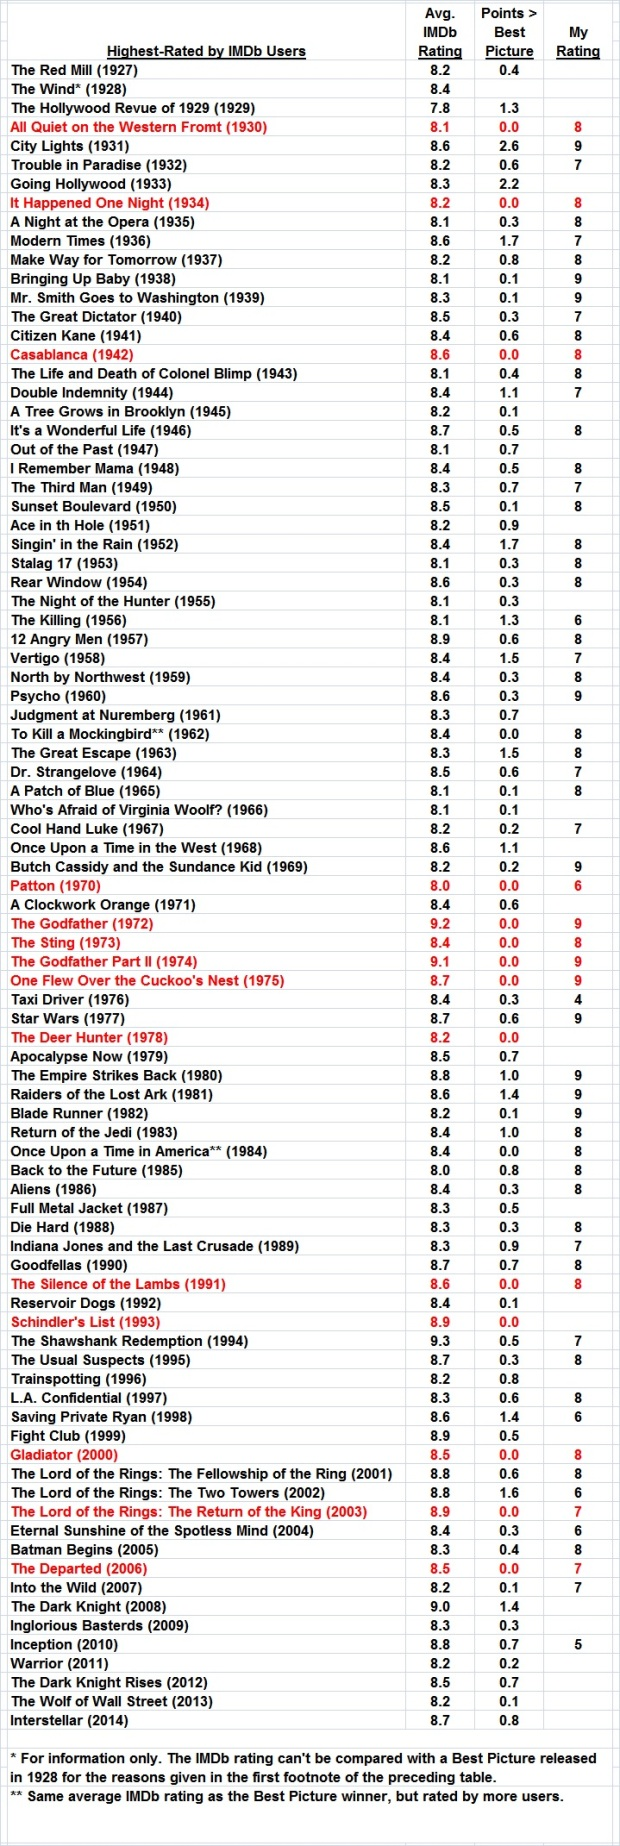 Most highly rated films, by year